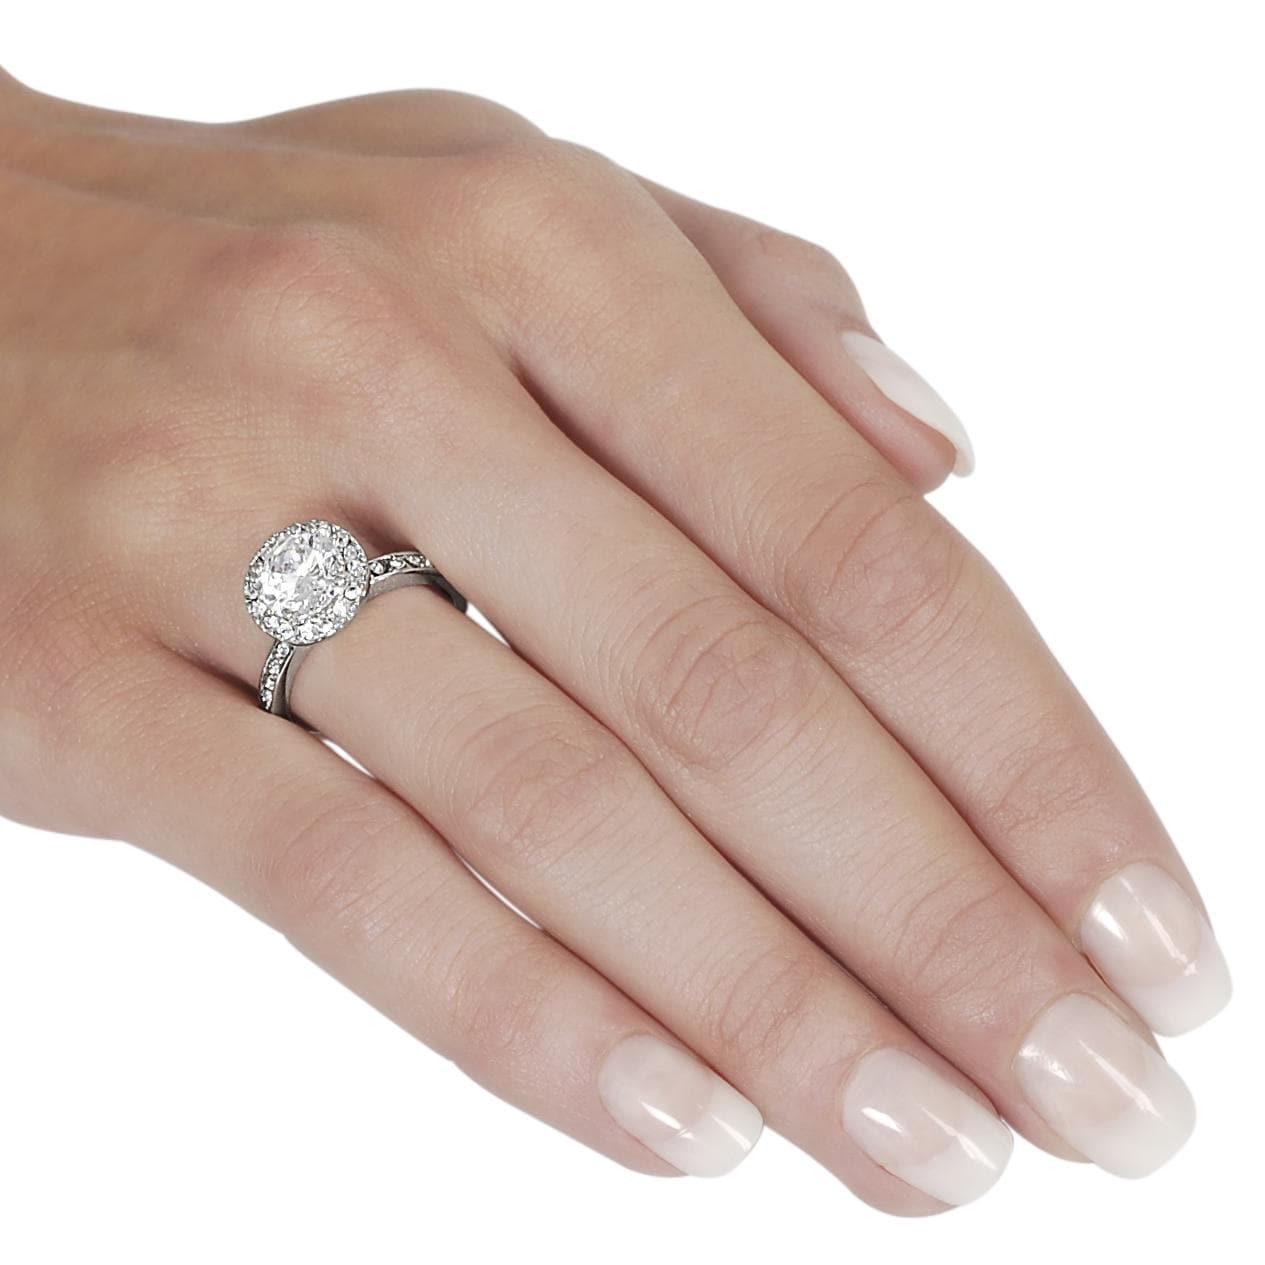 Journee Collection Silvertone Pave-set Round-cut CZ Ring